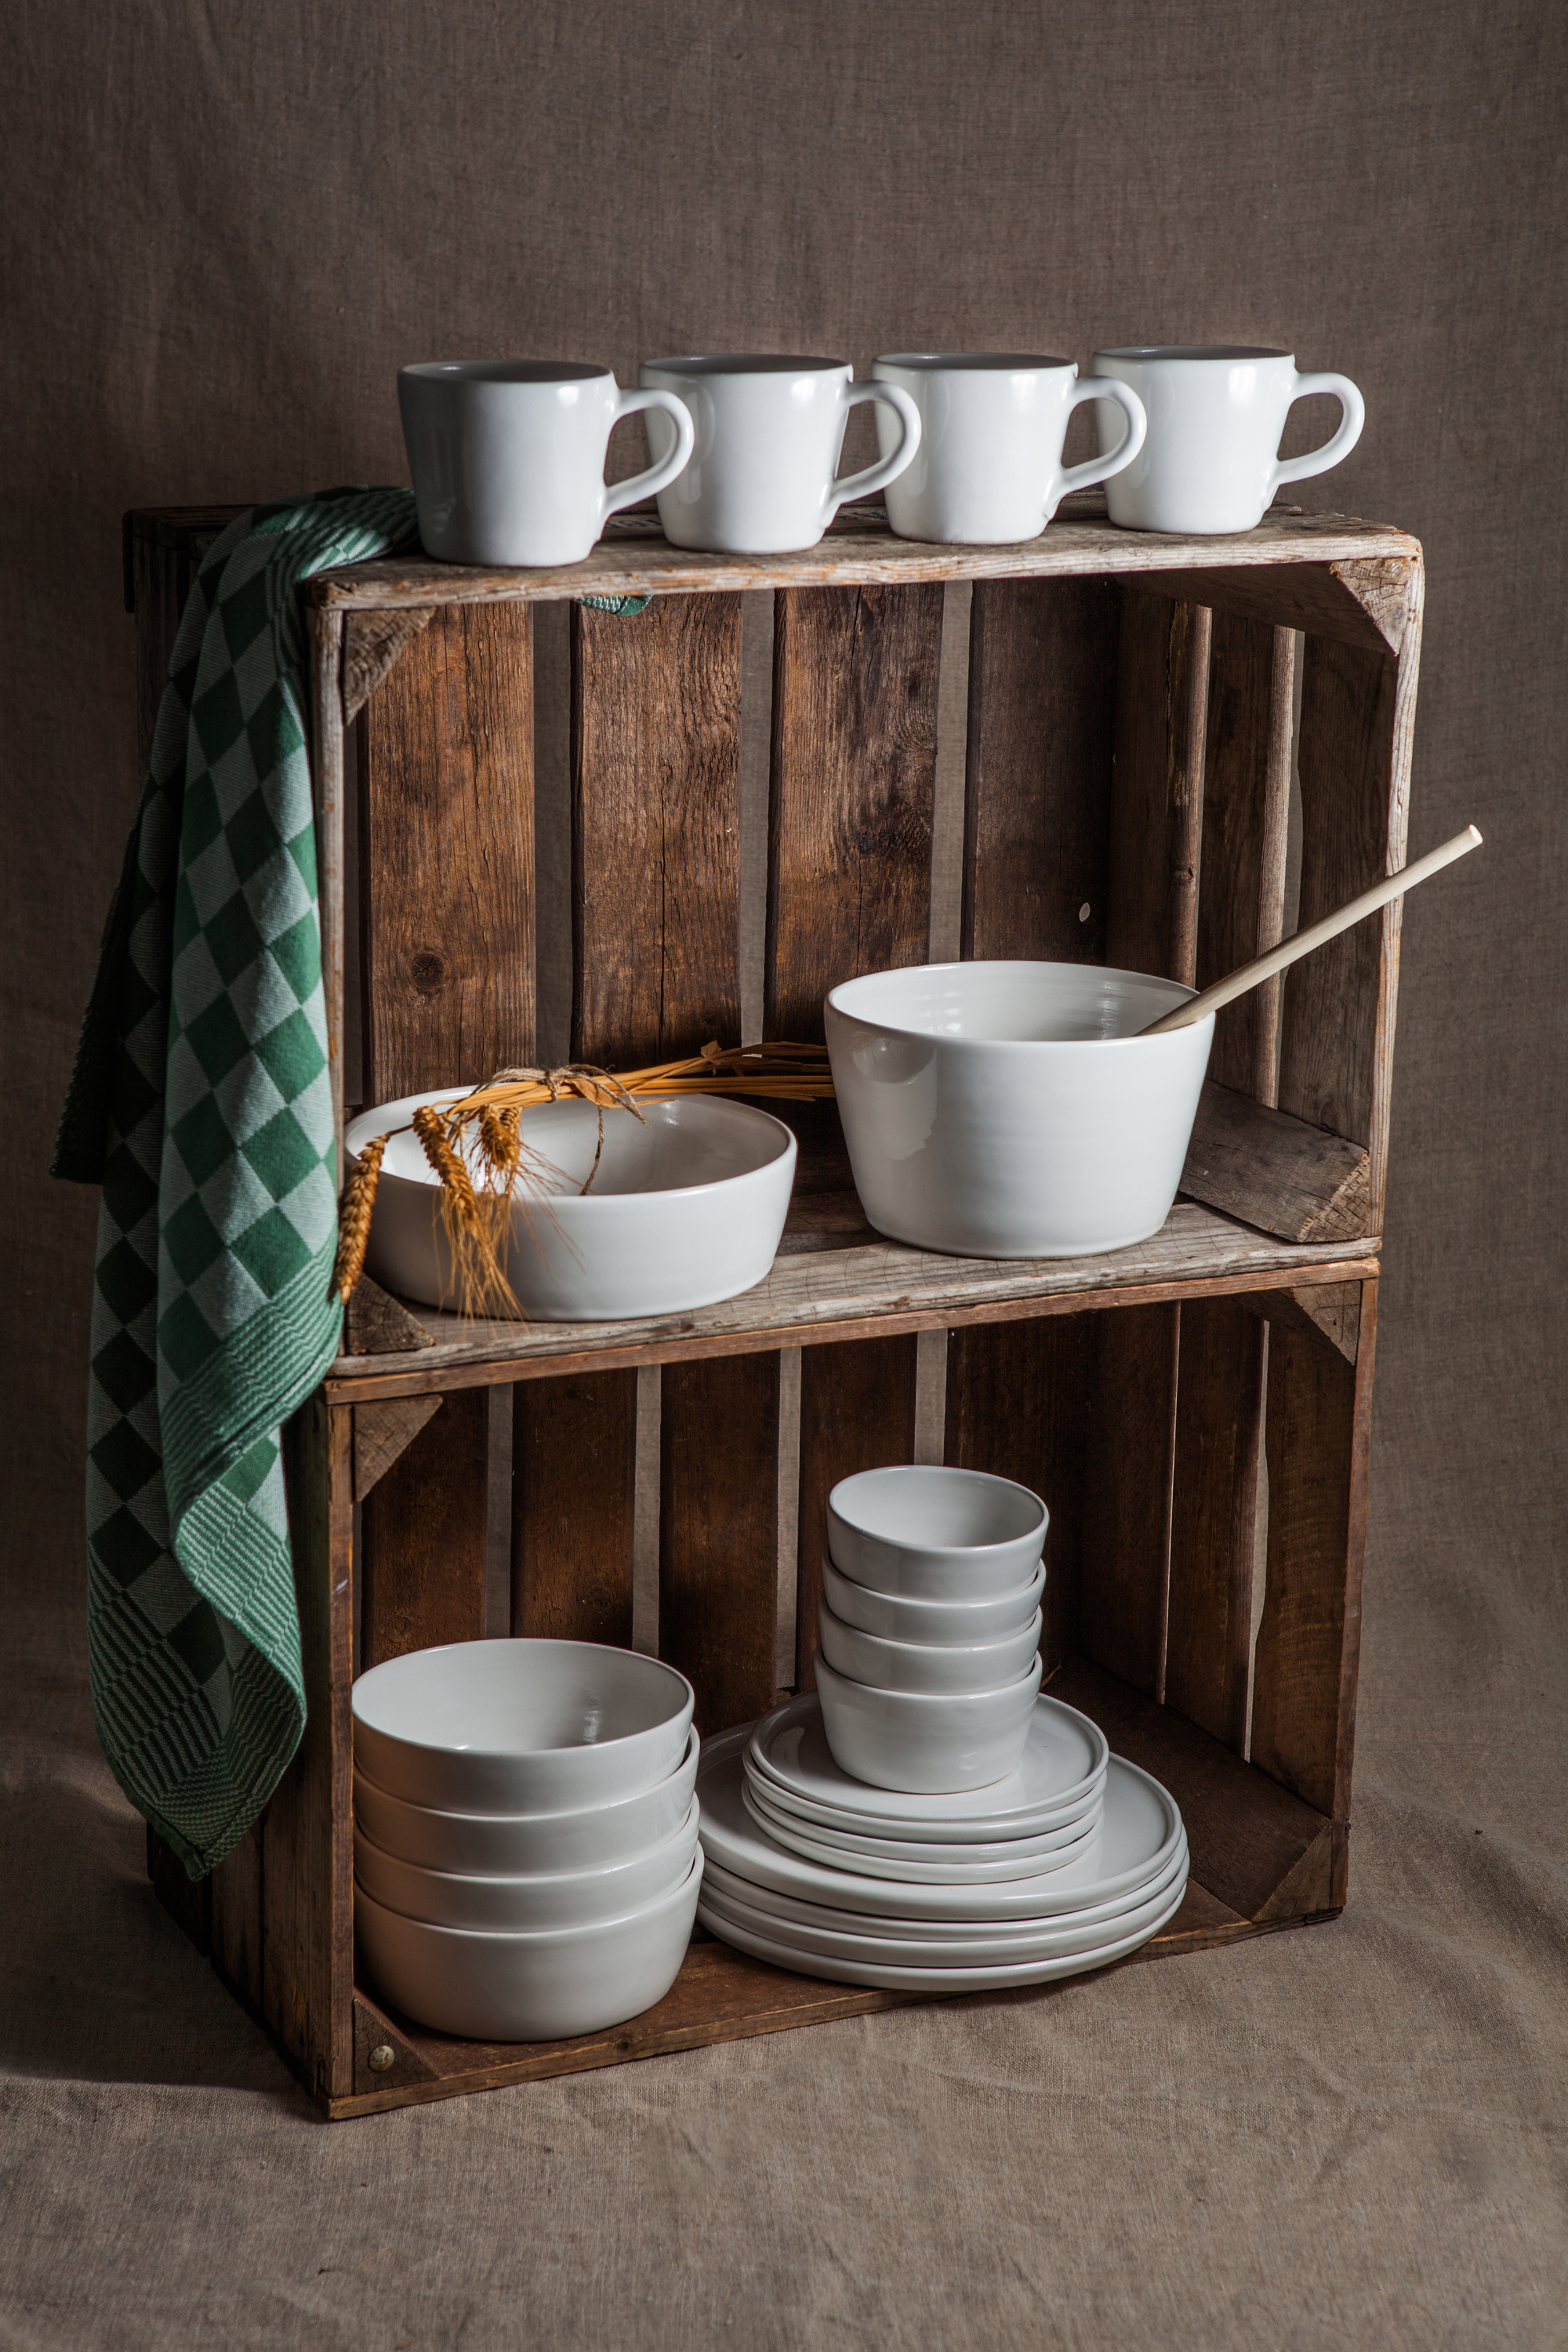 SIMPLE dinner set. Wheel thrown, stoneware, white glaze, no surface decoration, dishwasher and oven proof